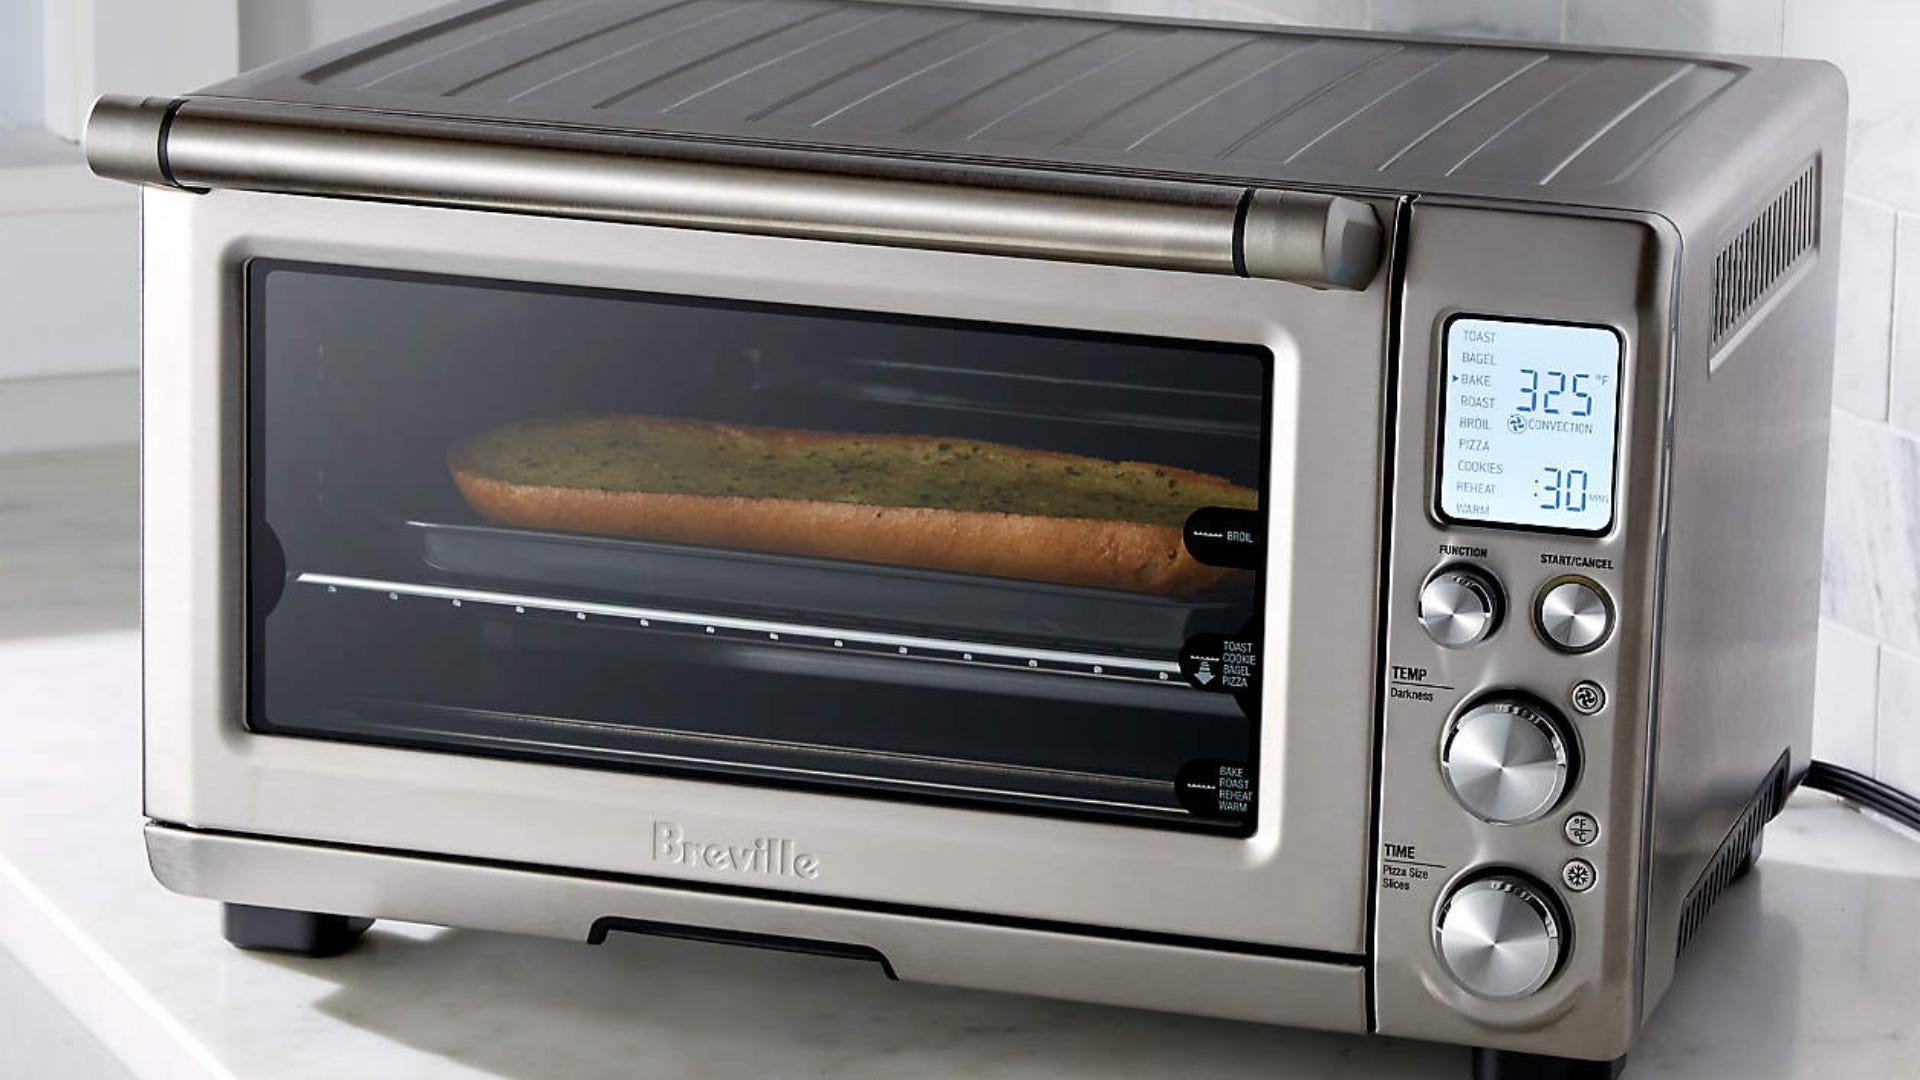 Toaster oven with garlic bread inside